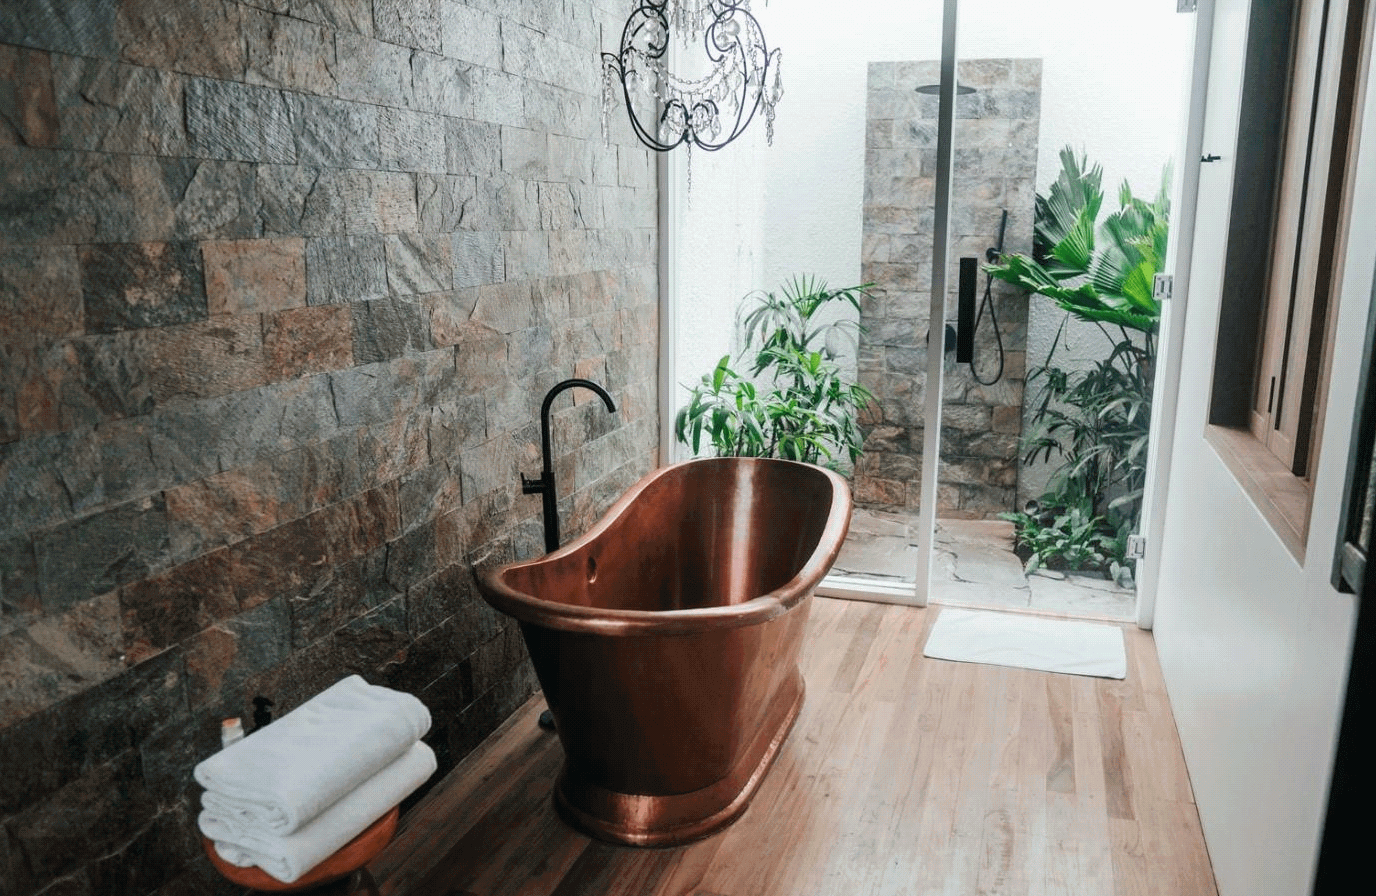 9 Lighting Ideas for Your Bathroom Design- Lots of Natural Light